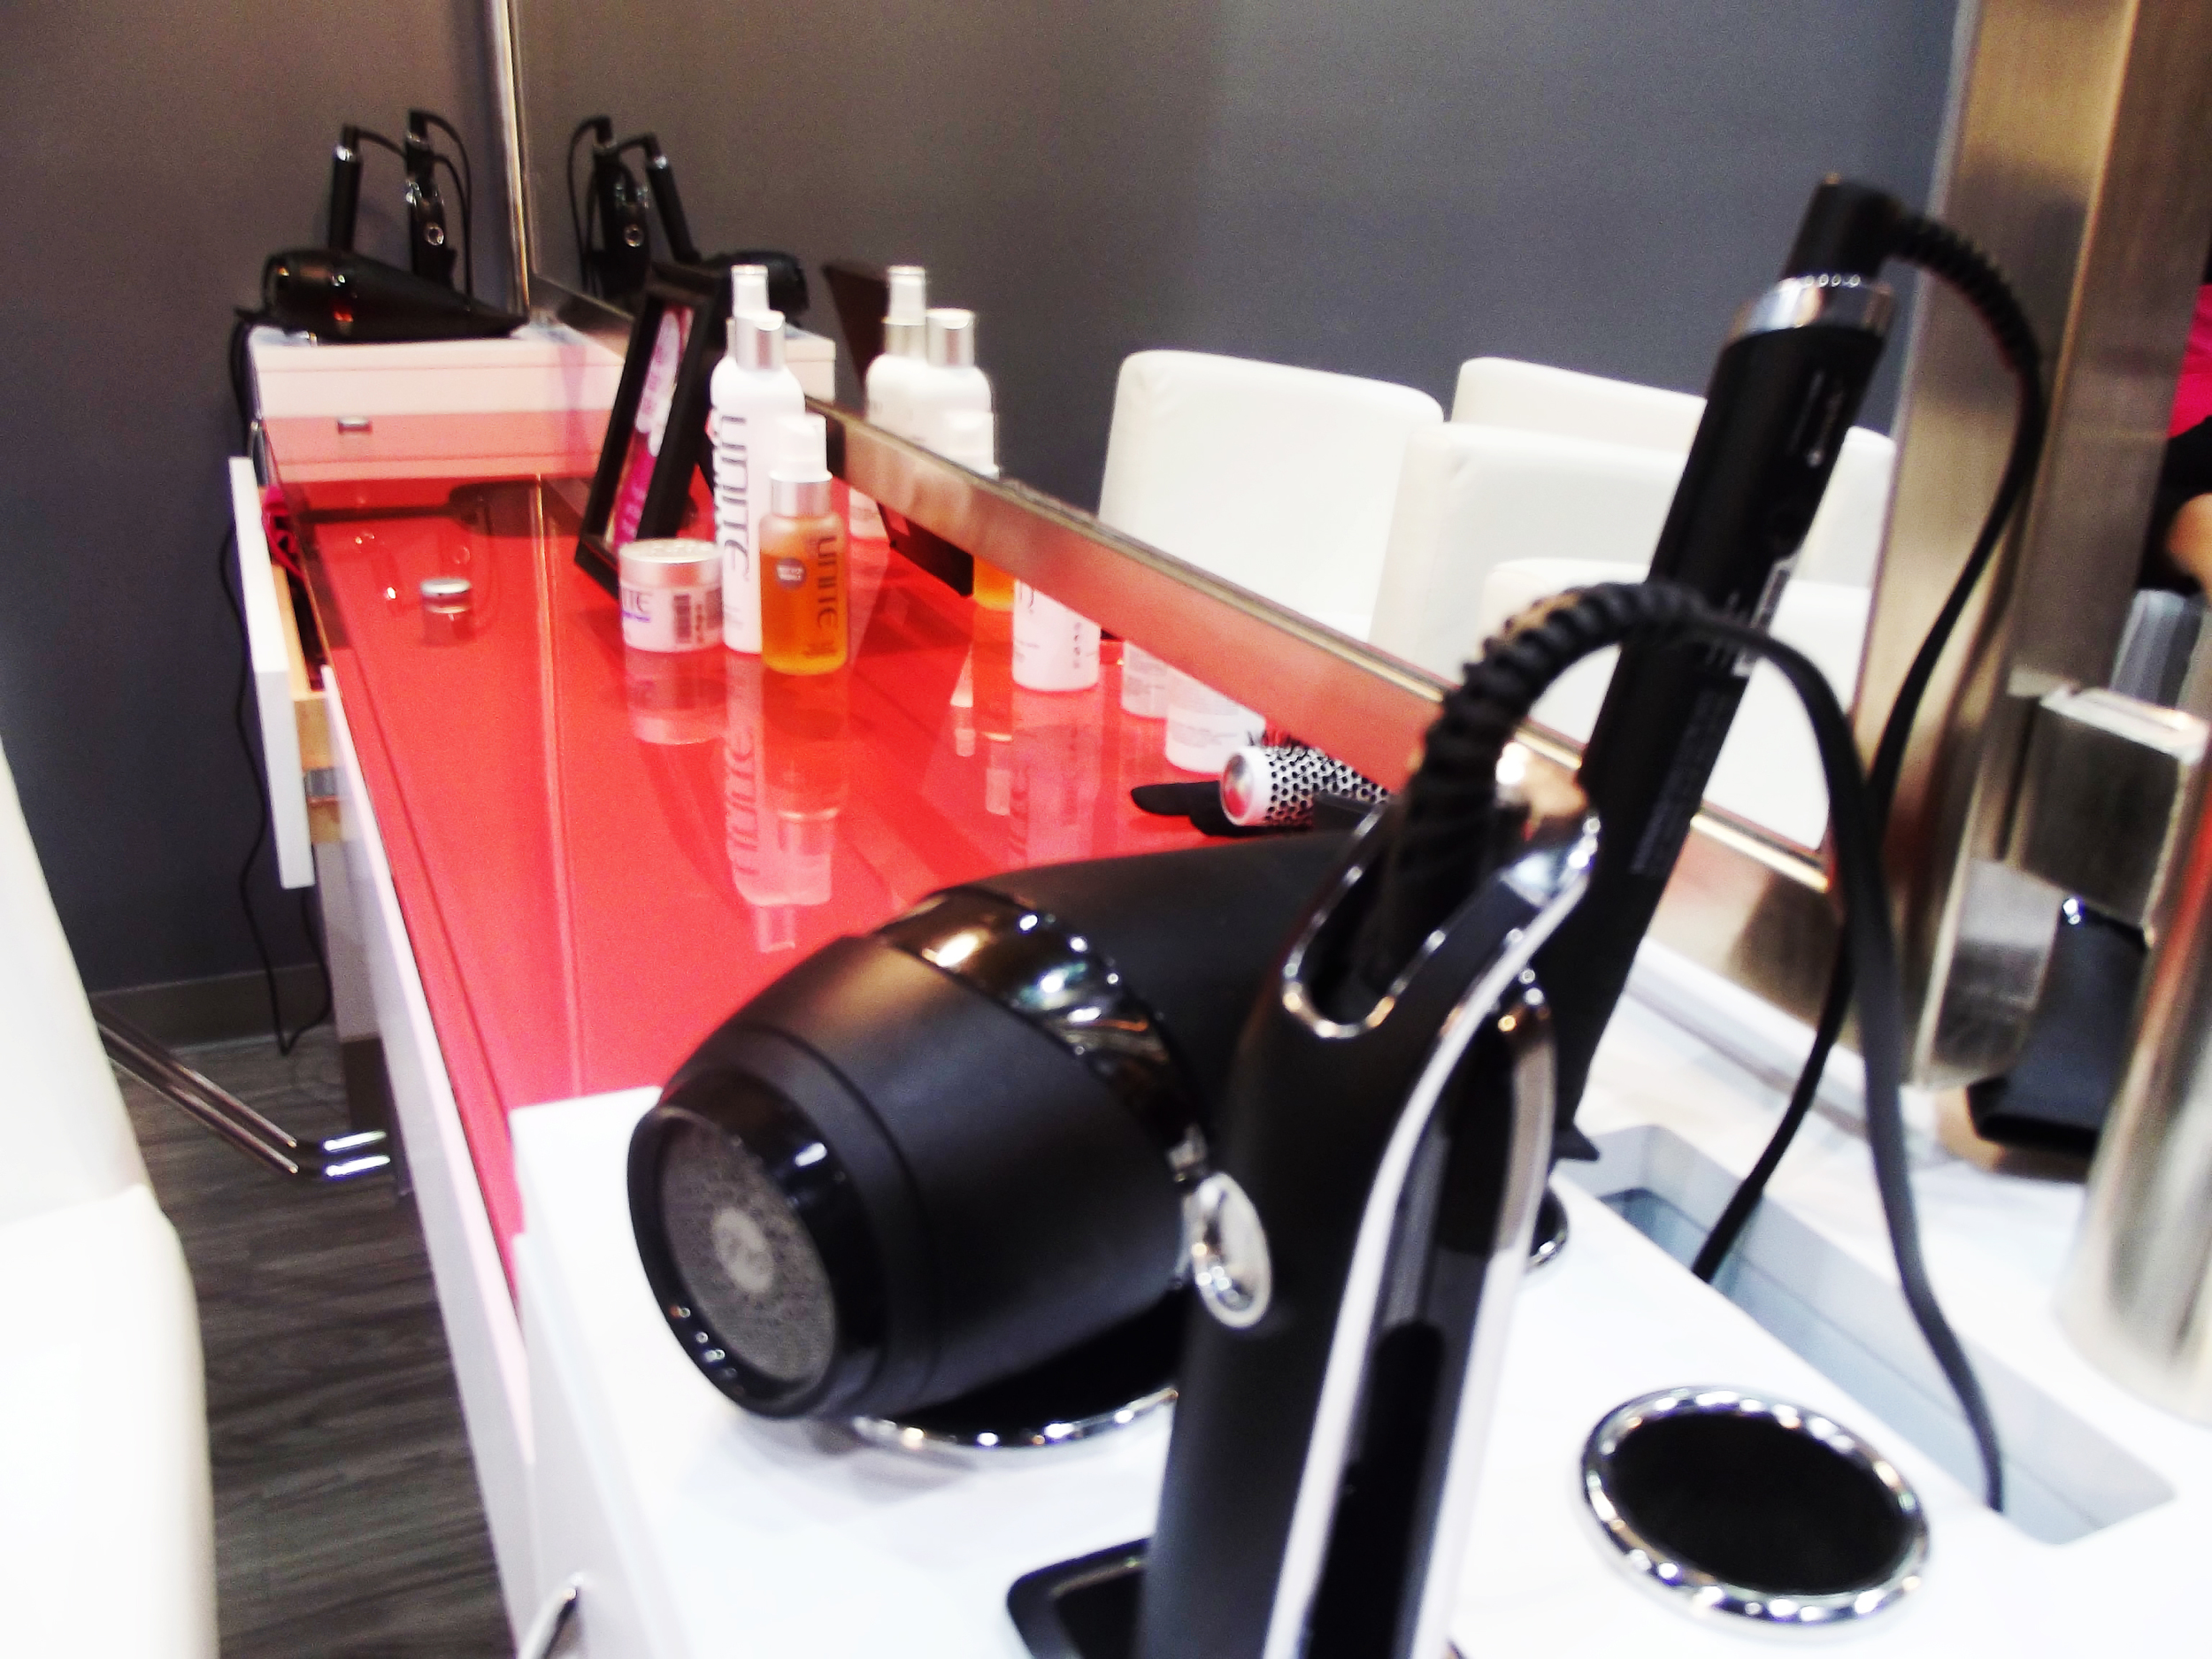 The stylist stations -- there are about 2 stylists to a bar.